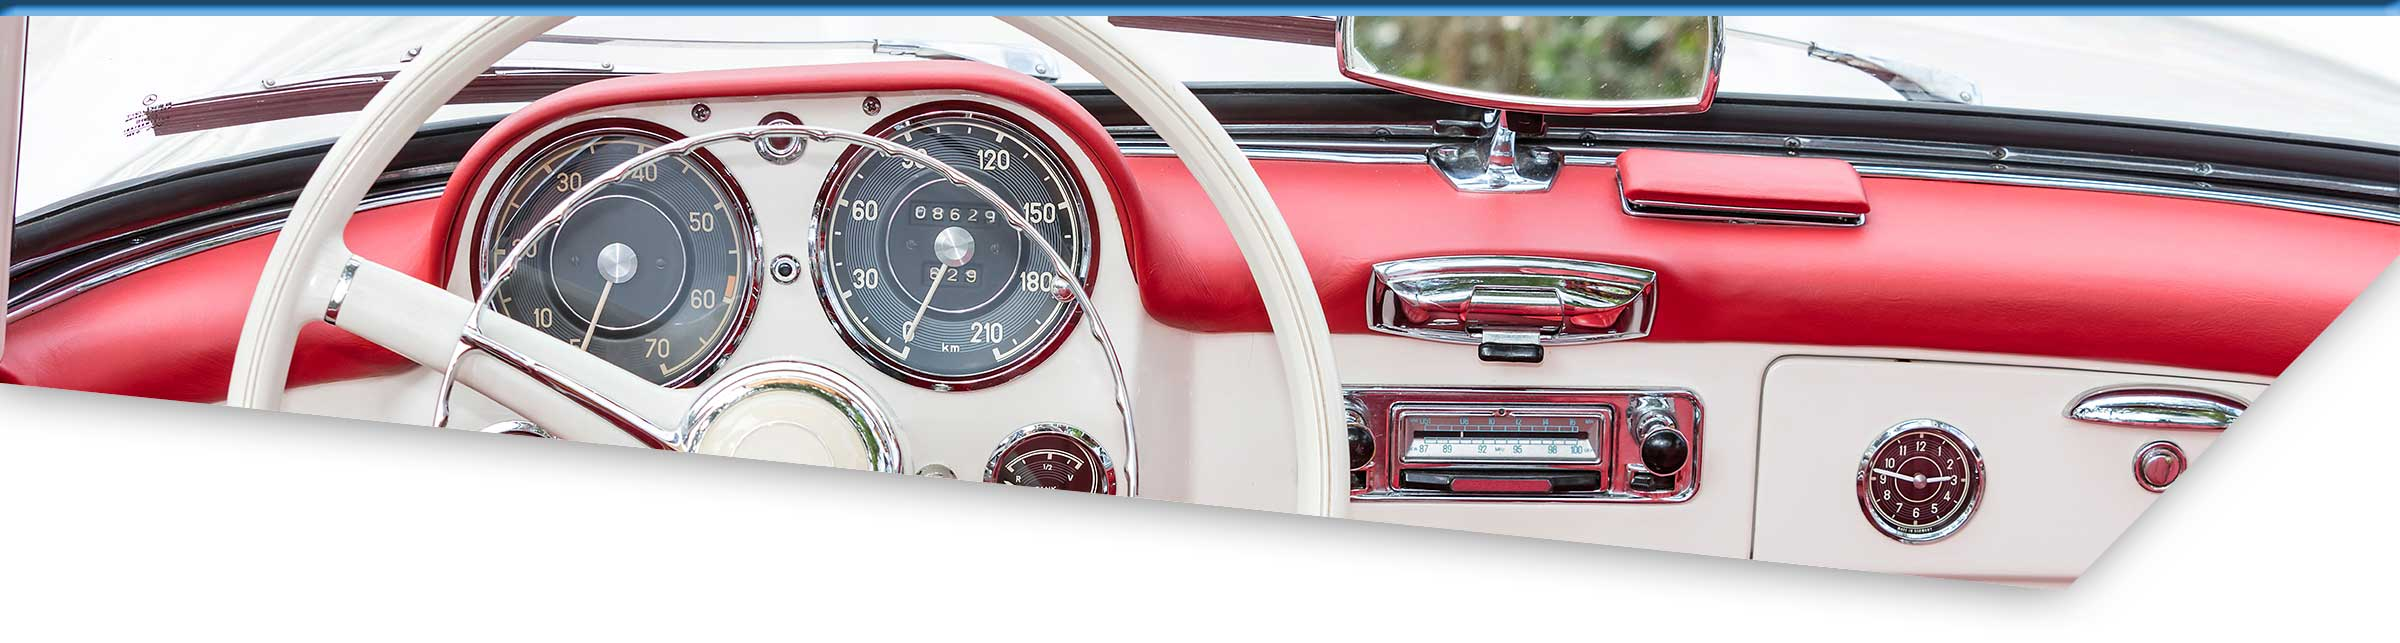 Dashboard of a classic red convertible